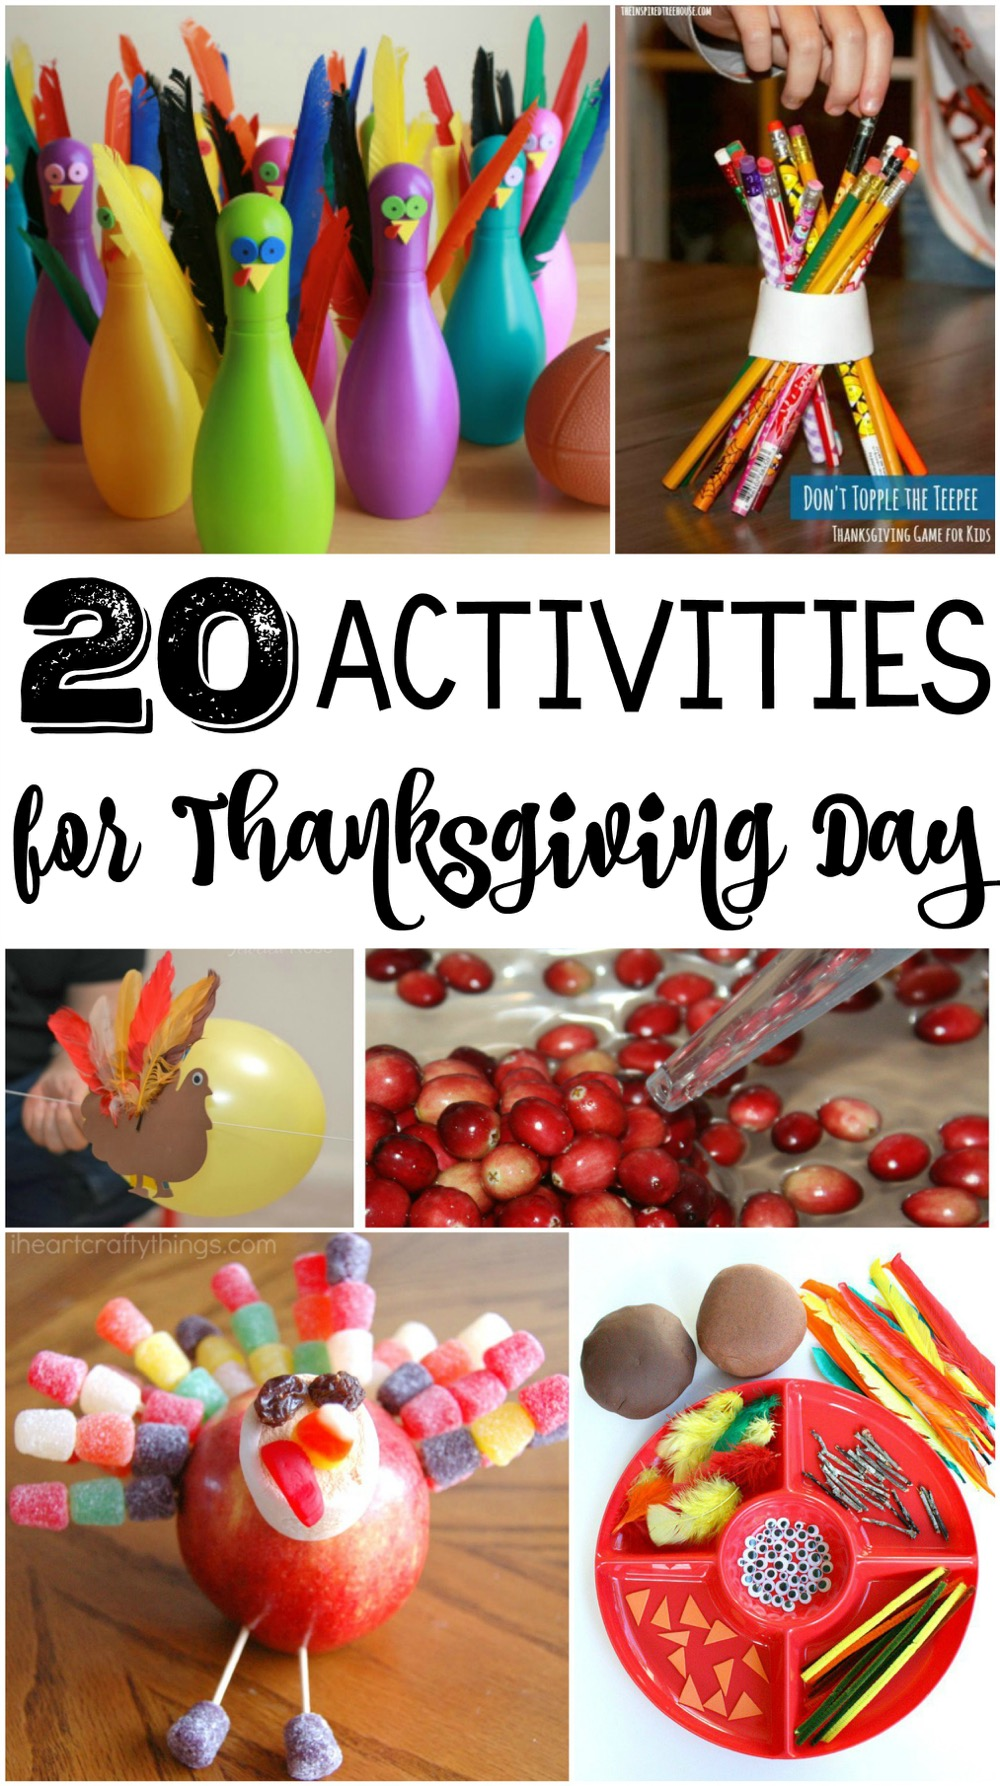 20 Activities for Thanksgiving Day